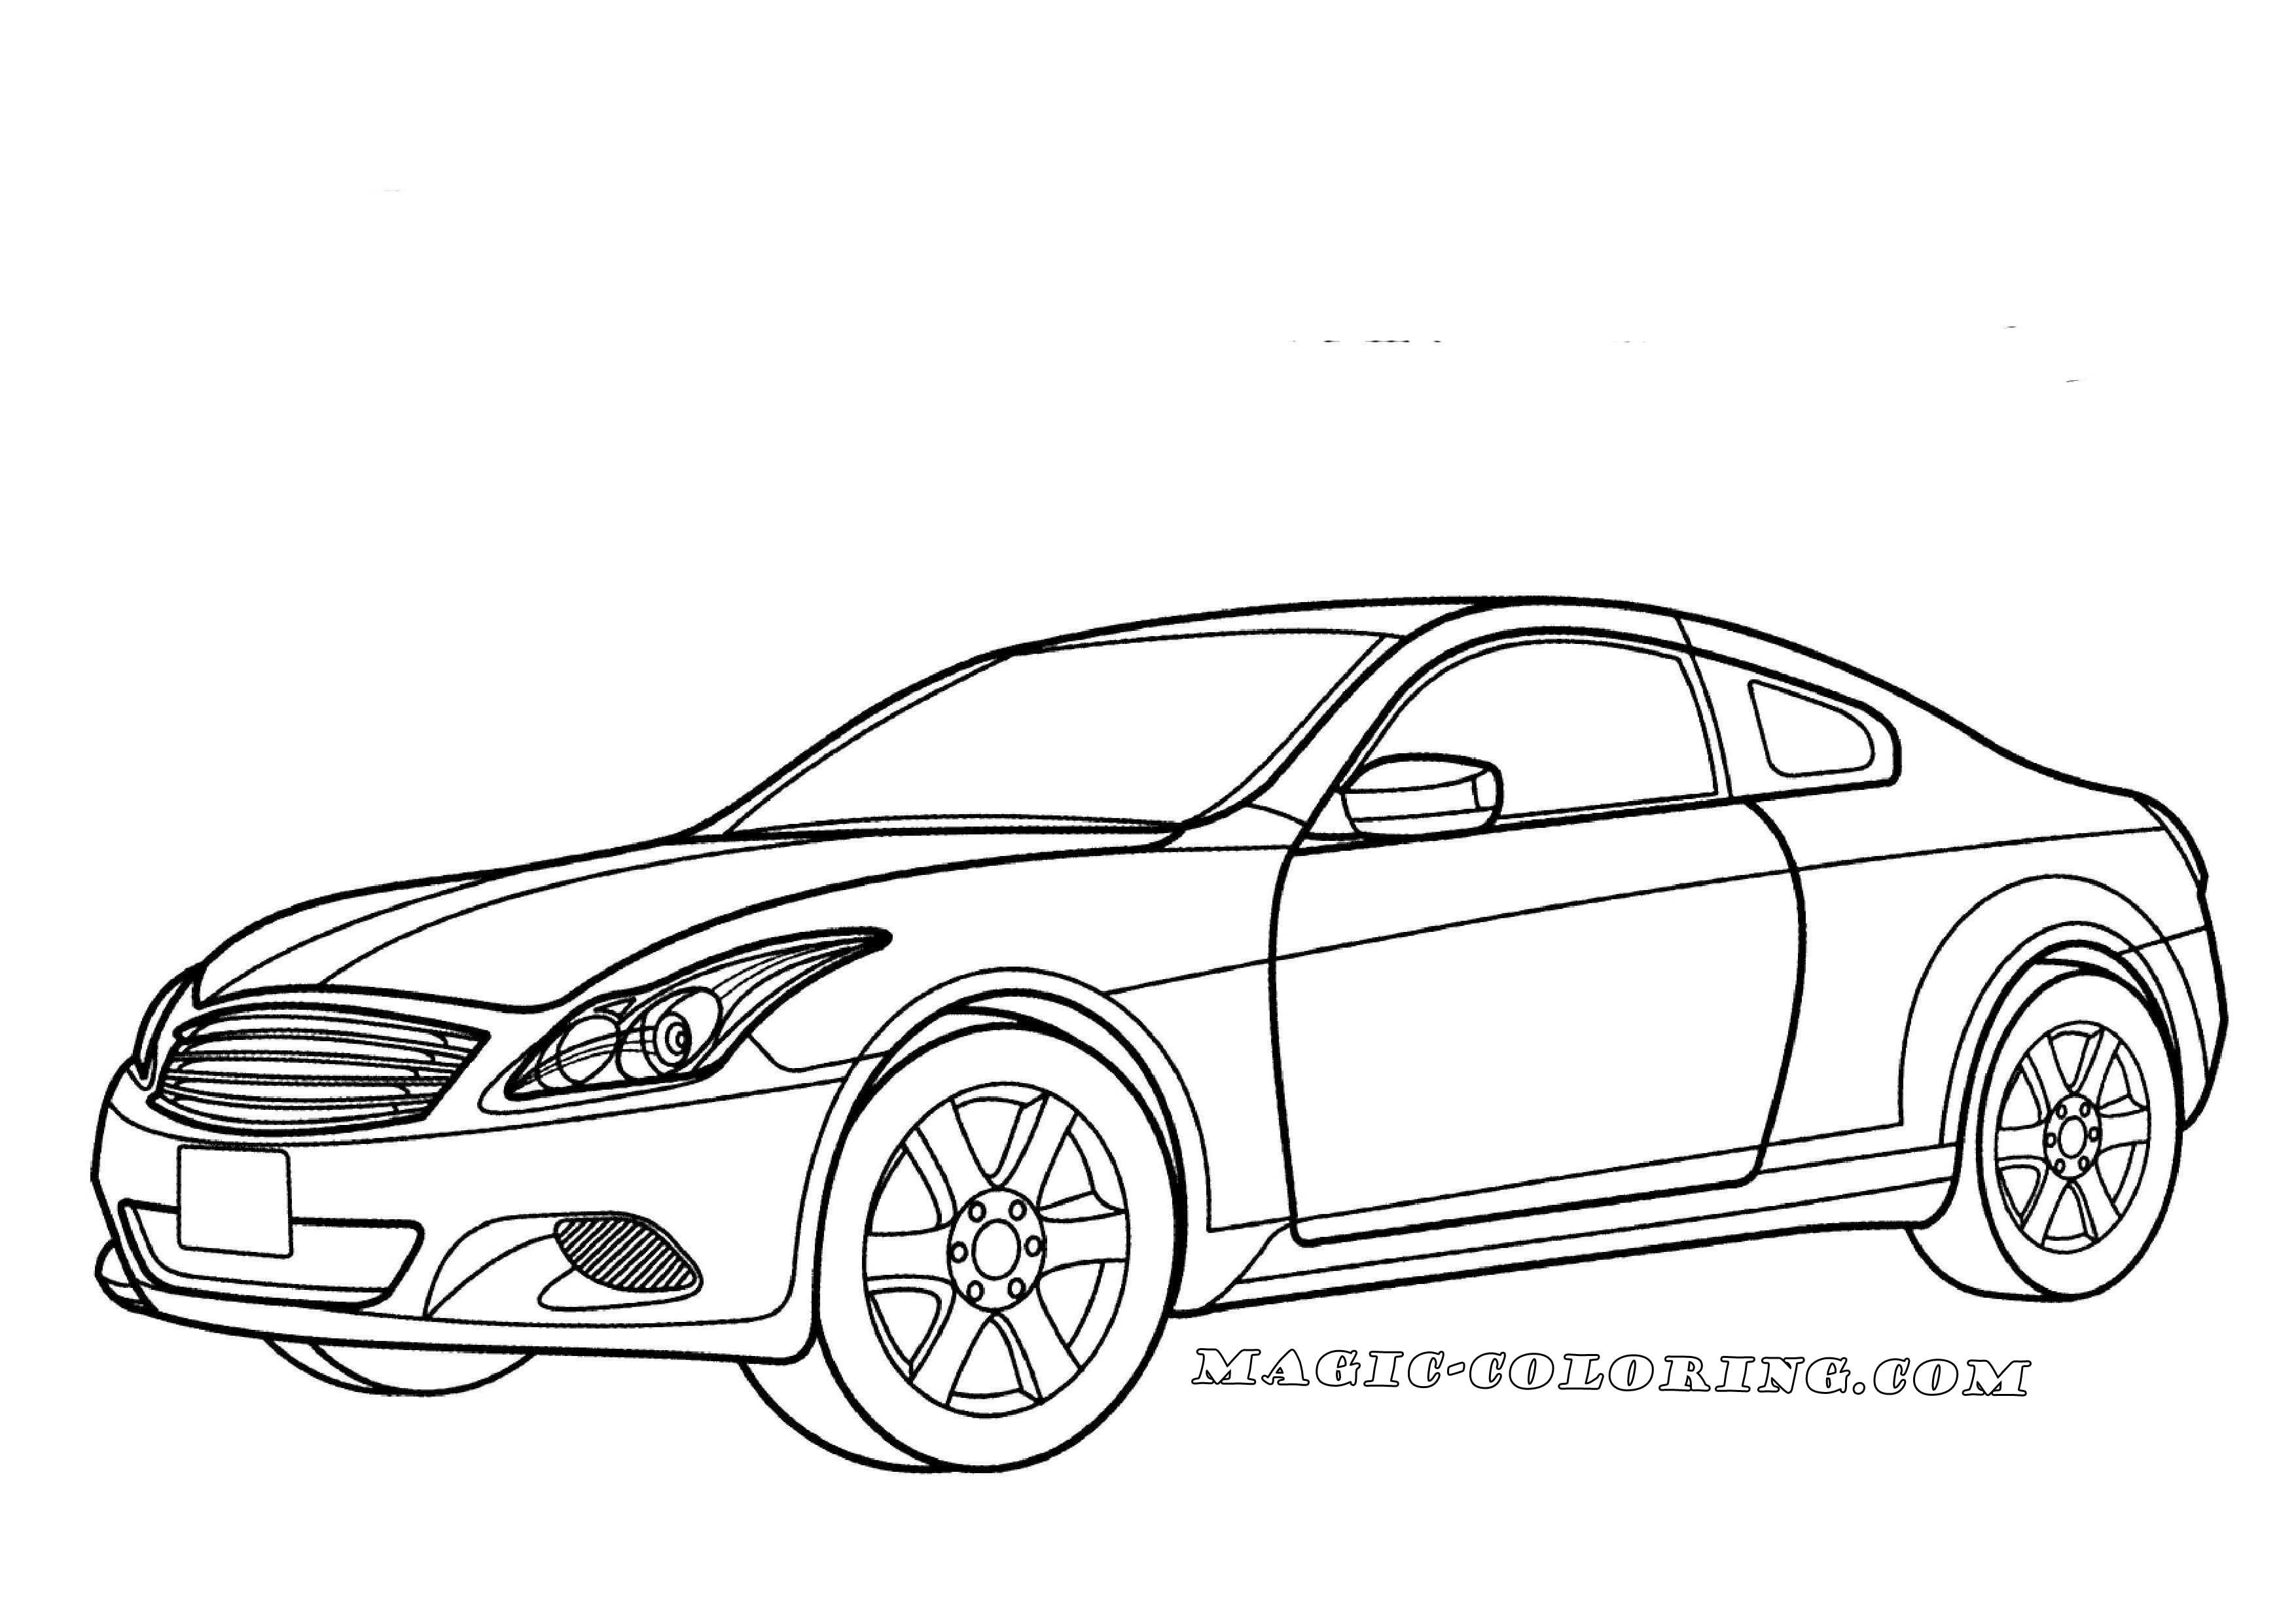 Nissan Skyline Coloring Page Cars Coloring Pages Coloring Pages Free Coloring Pages